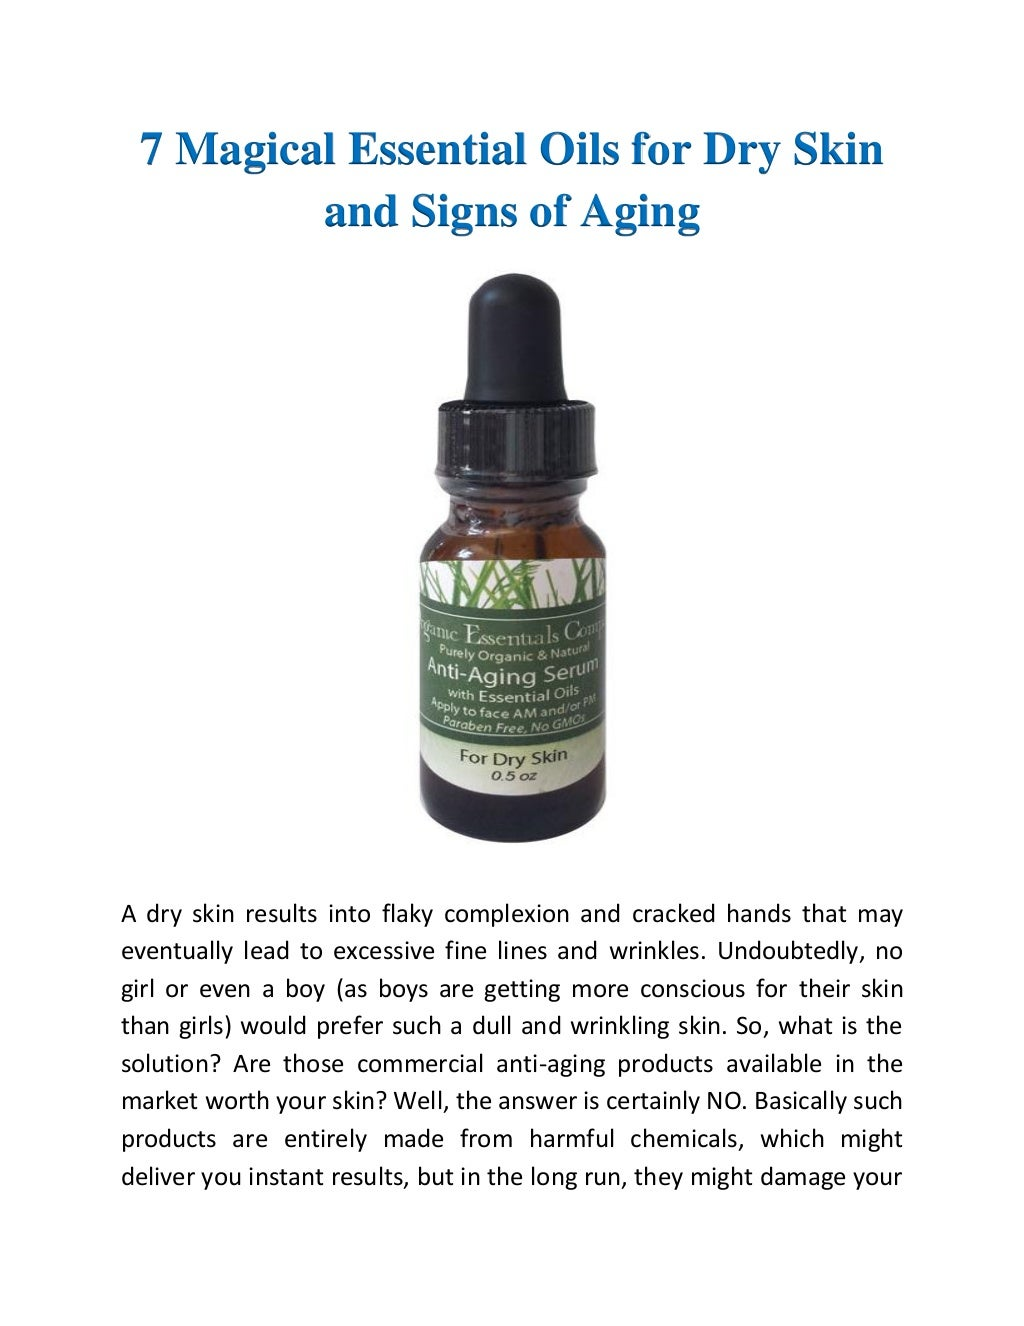 7 magical essential oils for dry skin and signs of aging